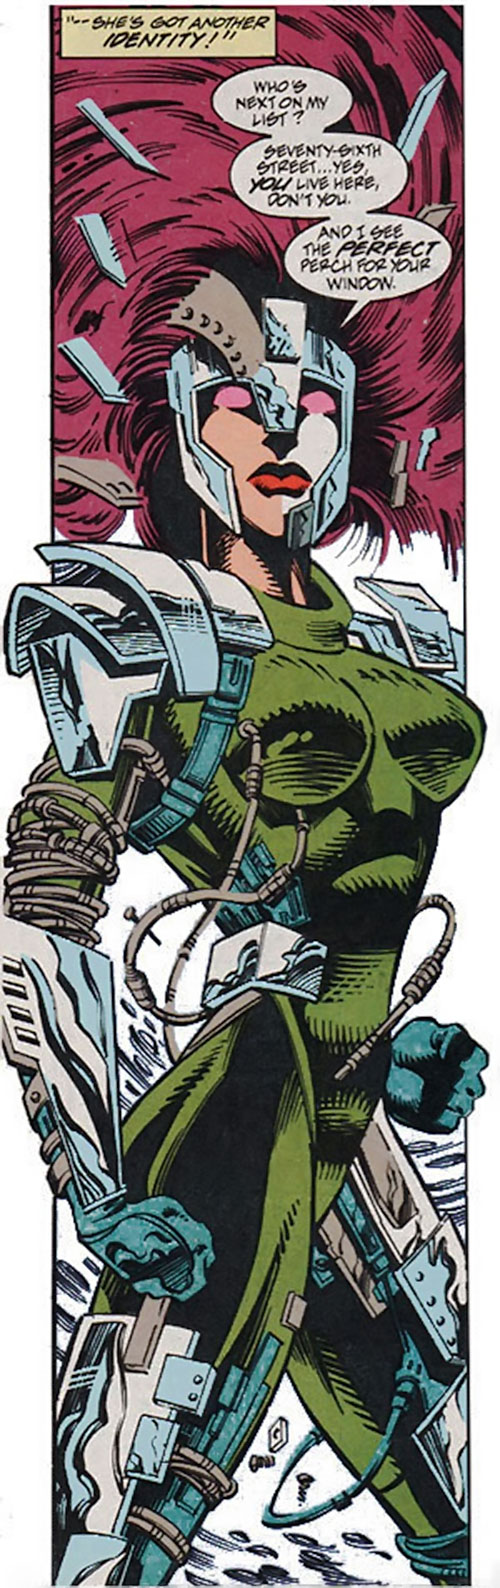 Typhoid (Daredevil character) (Marvel Comics by Nocenti) as Bloody telekinetically assembling her armor